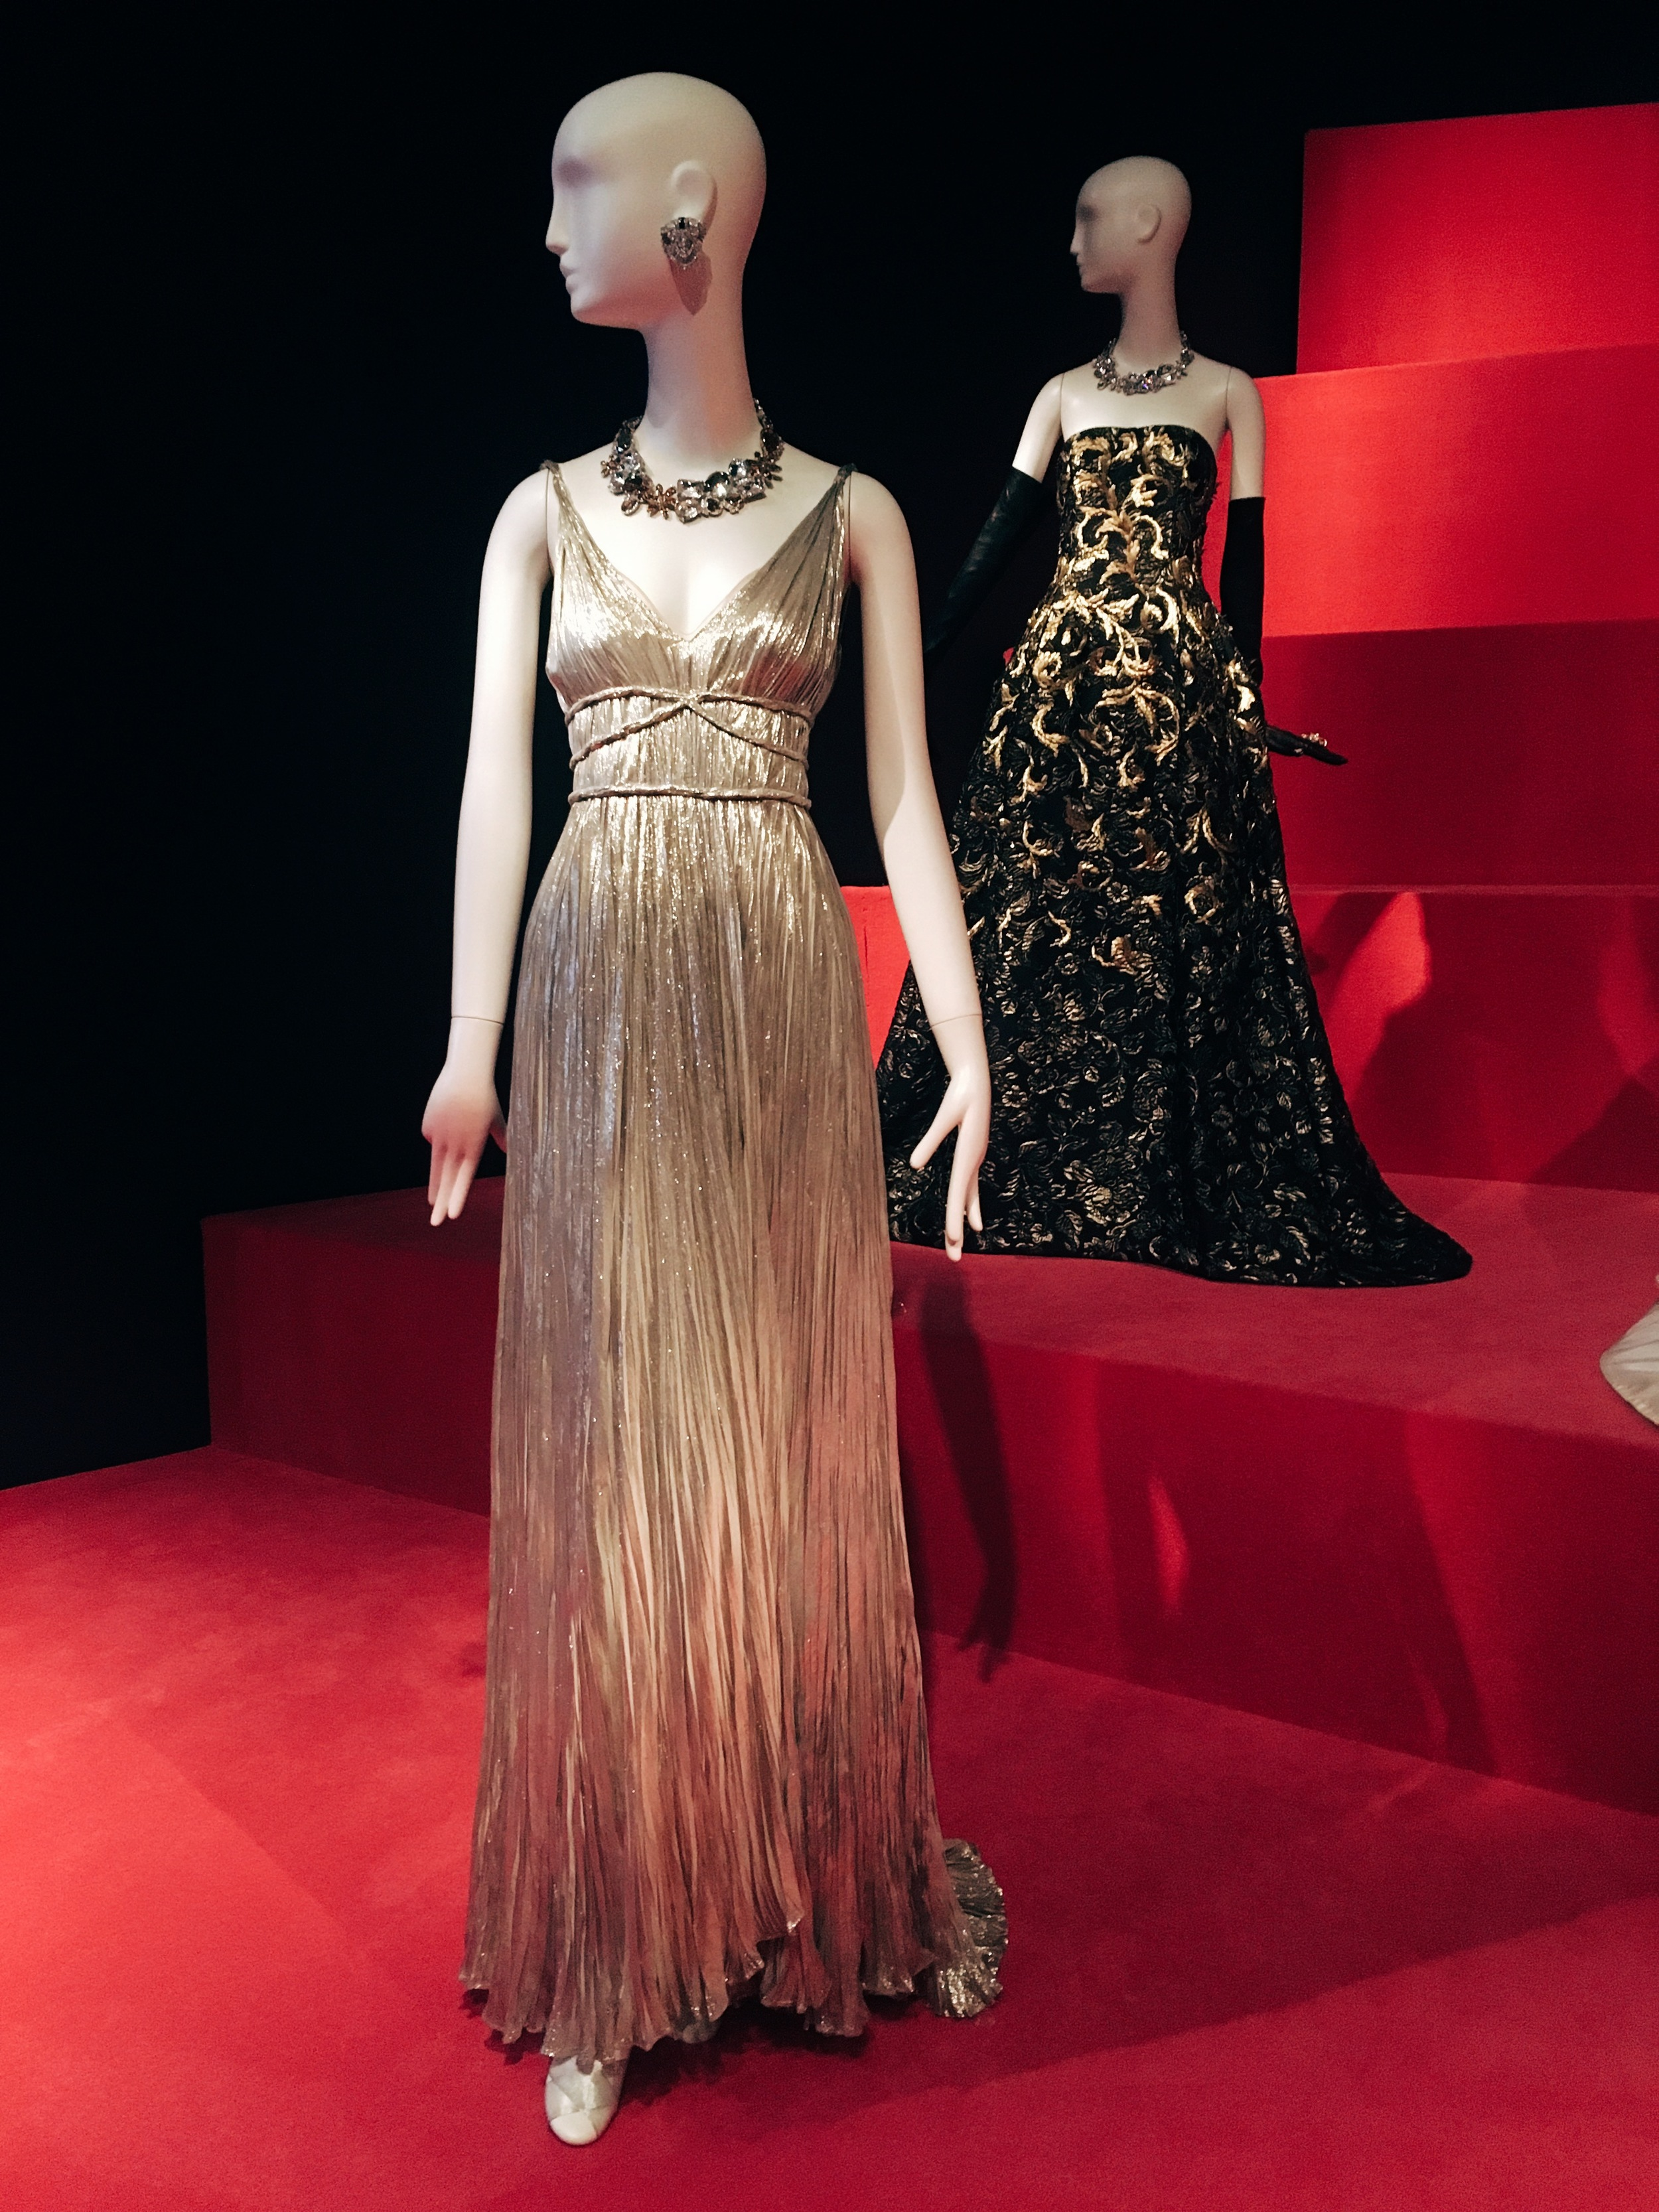 Worn by Jessica Chastain at the 2014 Met Gala